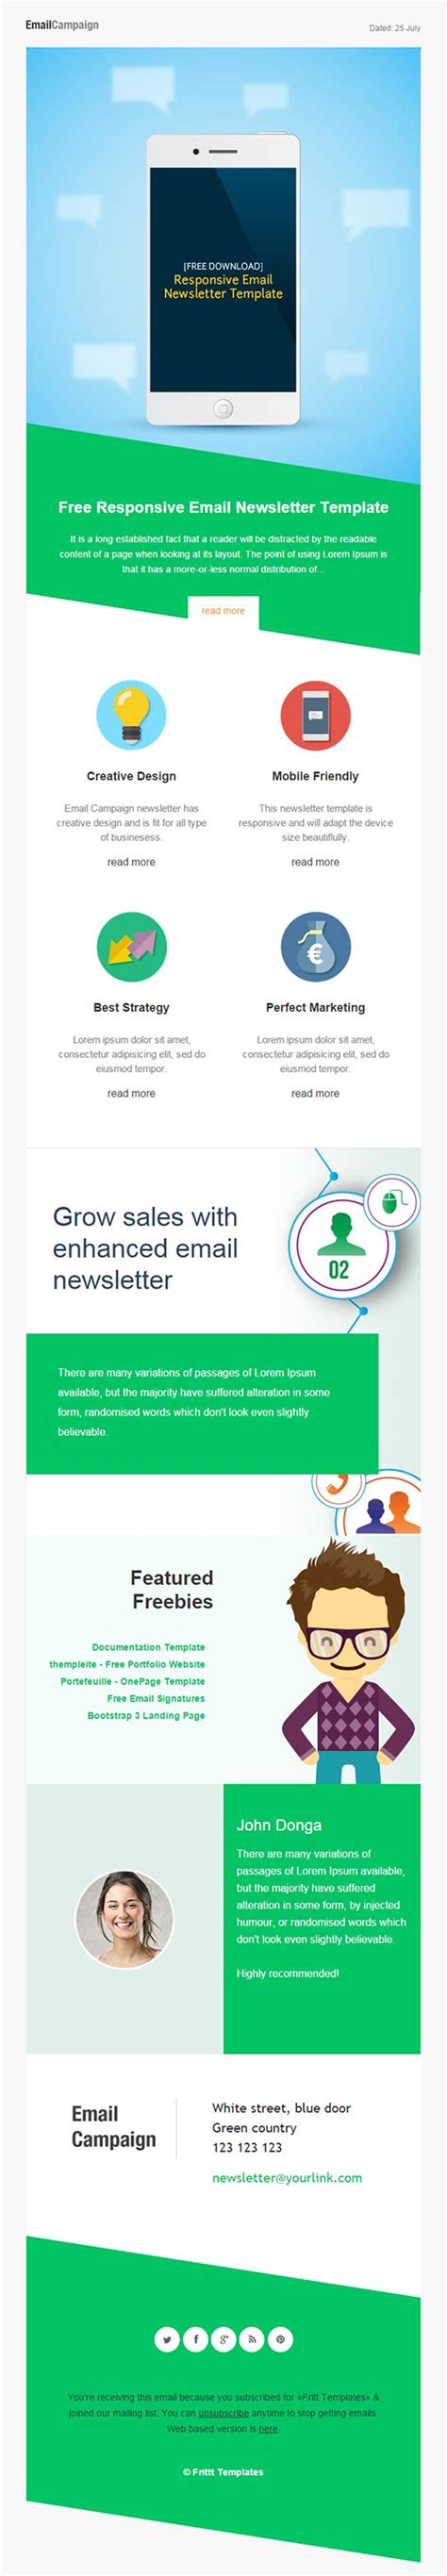 Responsive Email Newsletter Template Free Download On Behance Free Responsive Email Template Mailchimp